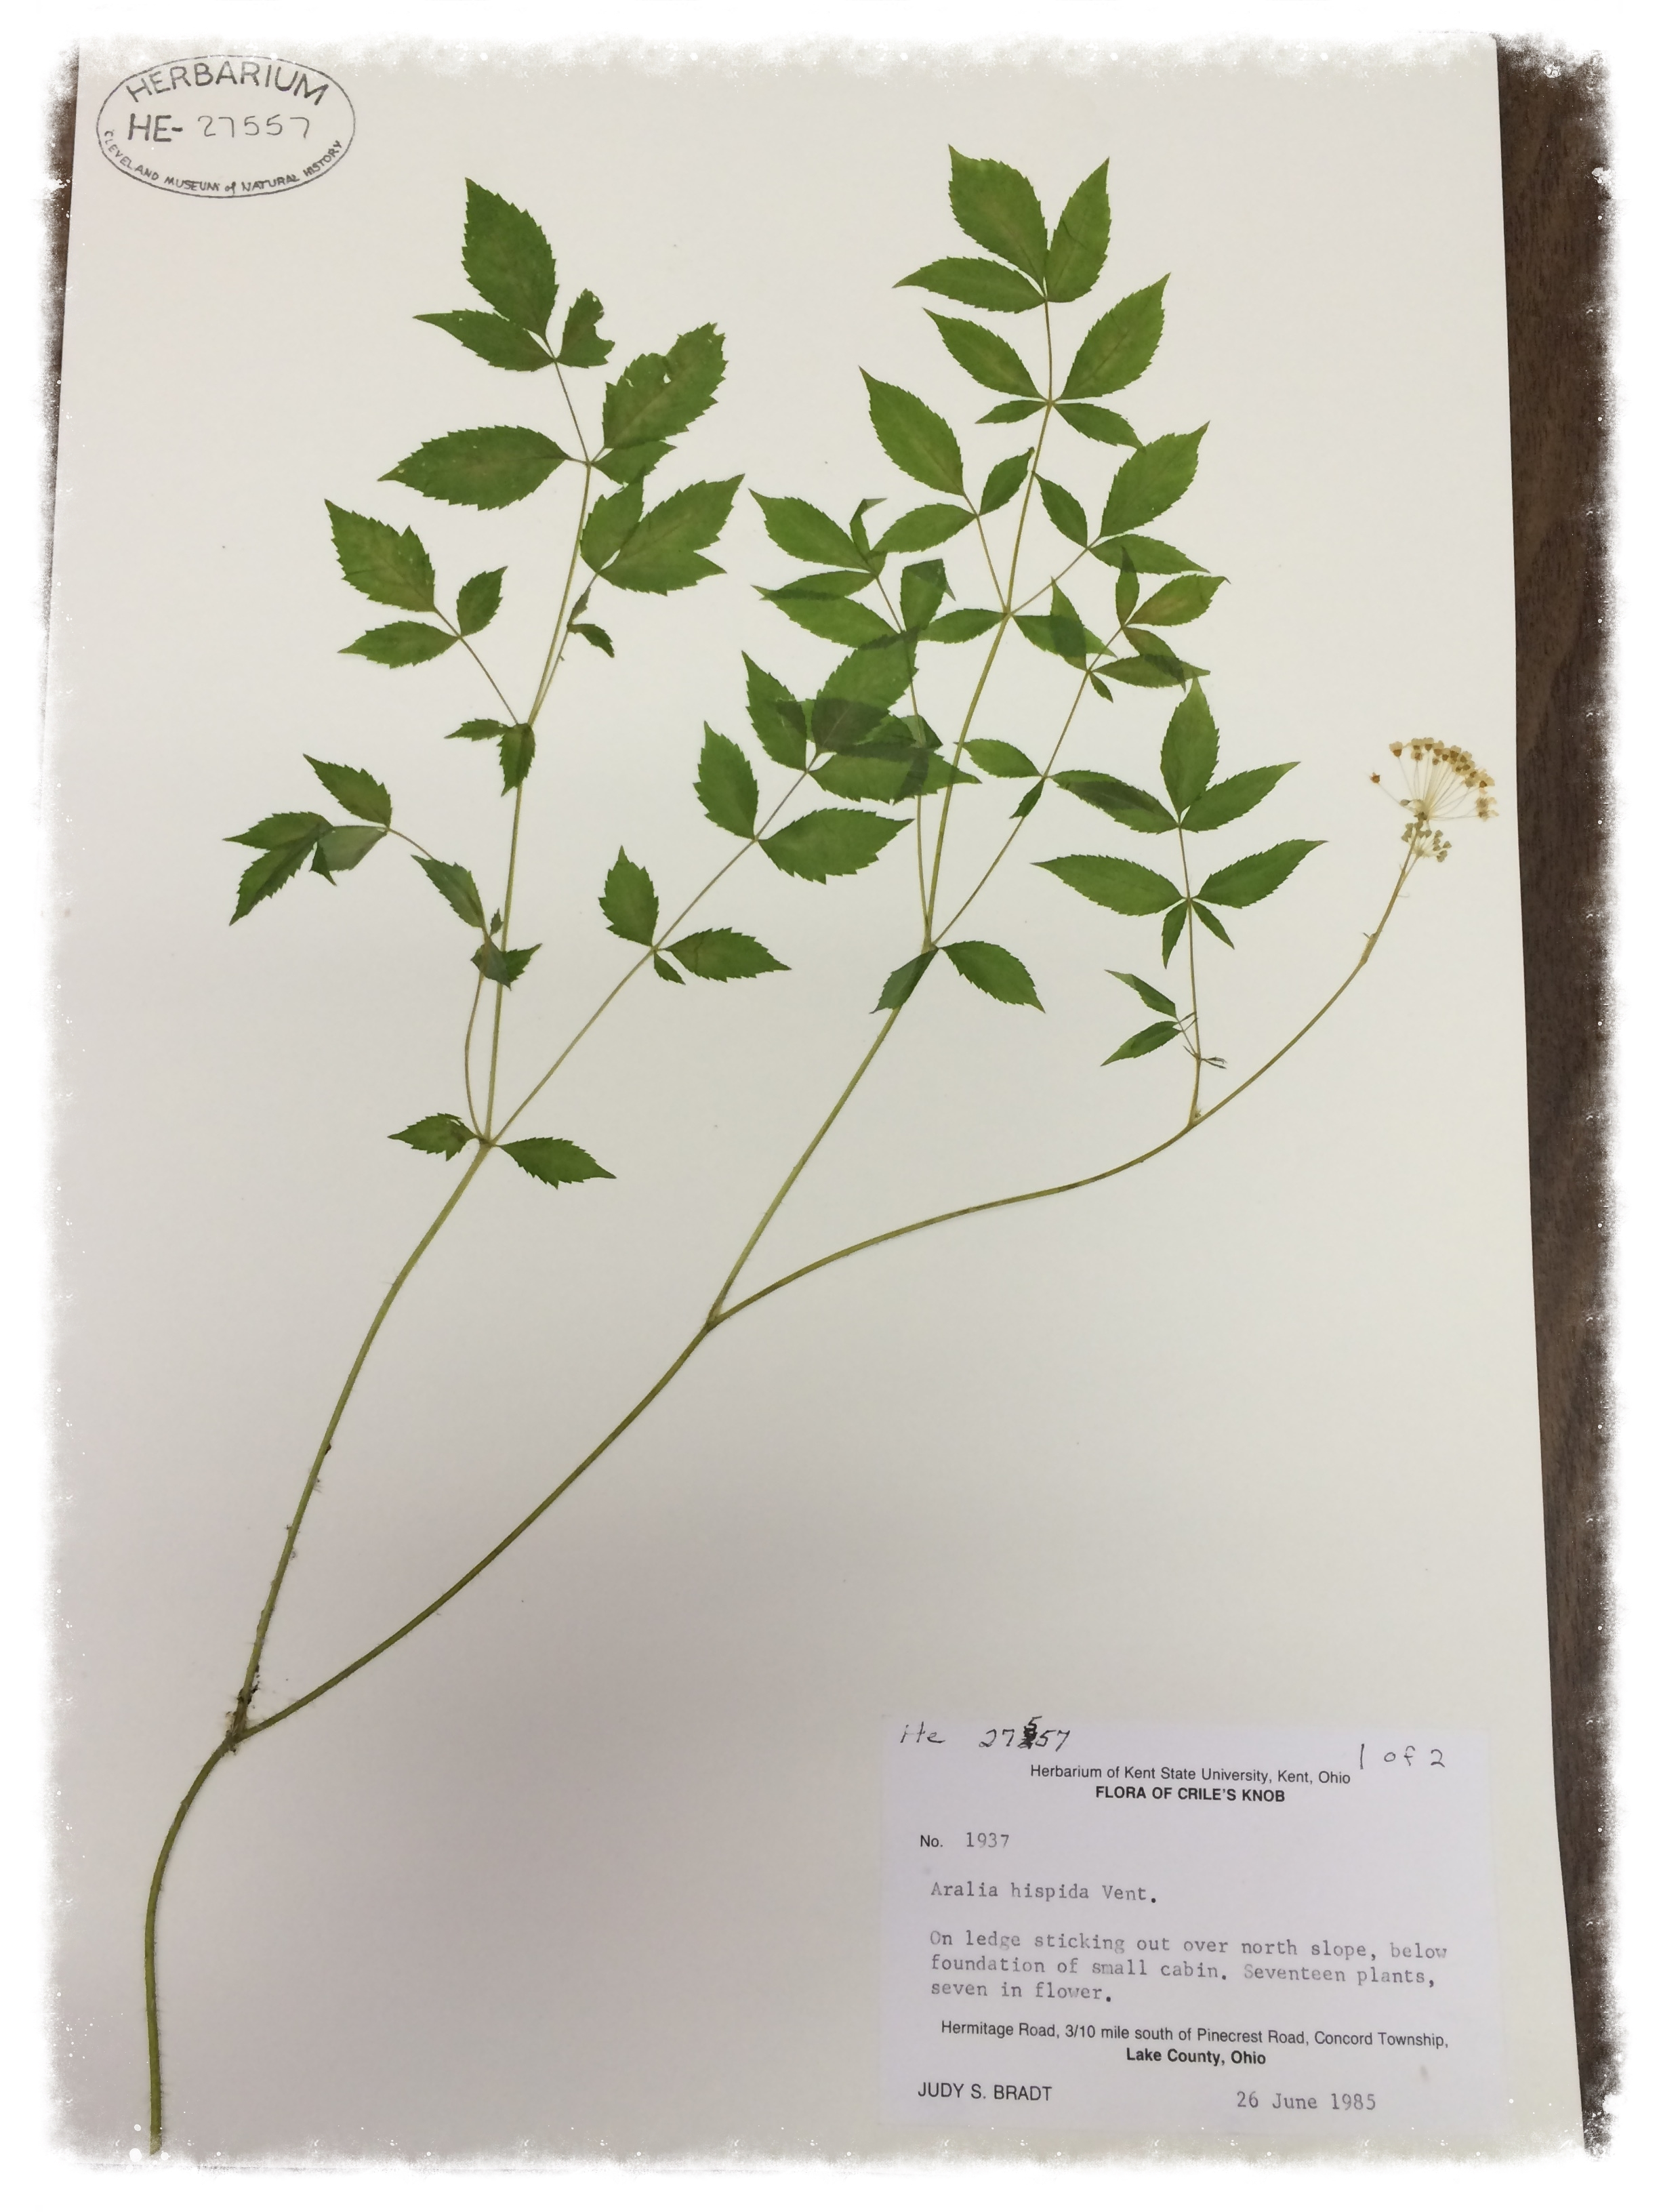 Aralia hispida ,bristly sarsaparilla, specimen collected by Judy Bradt during her graduate studies research in the field. Close-ups of   A. hispida    specime n and  label .   Courtesy of The Cleveland Museum of Natural History, Trish Fox, Herbarium Coordinator